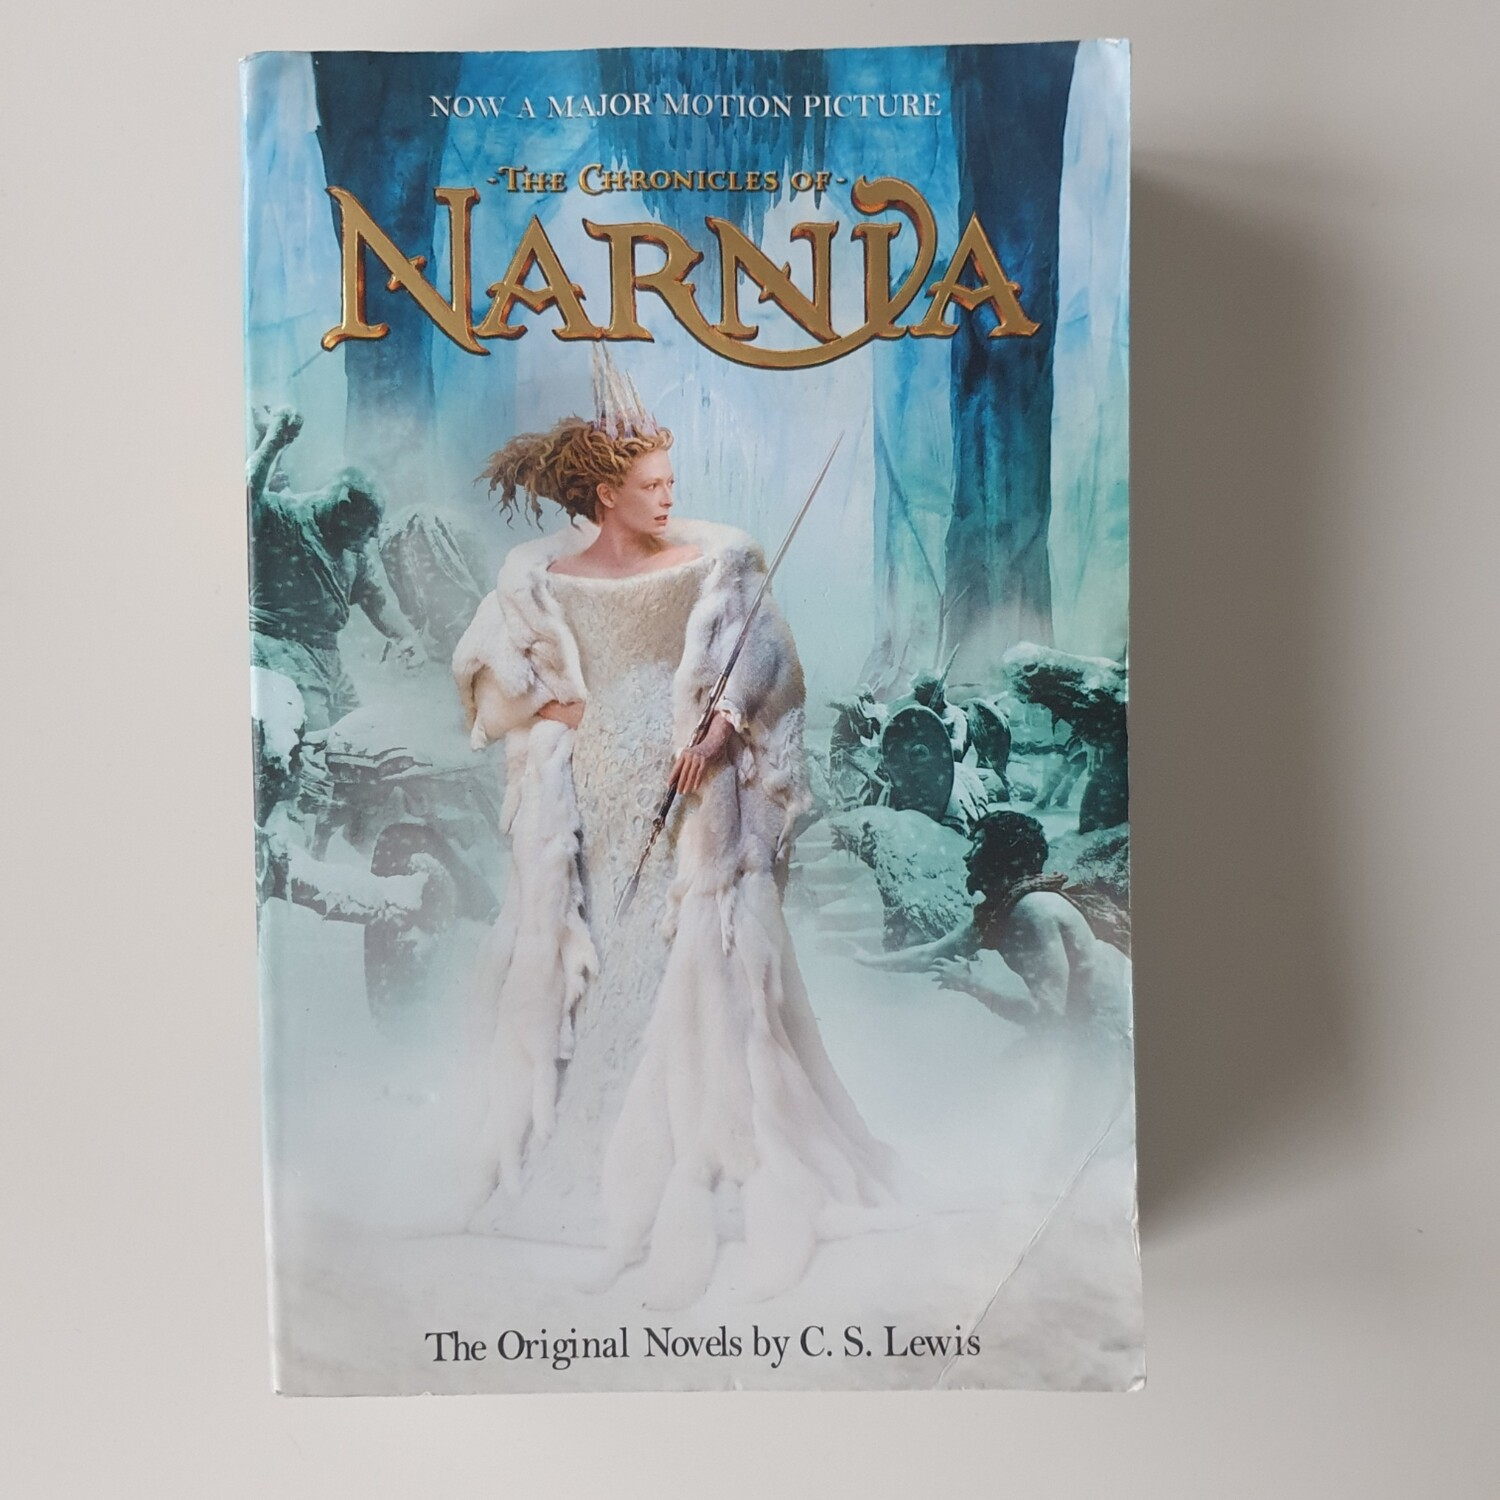 The Chronicles of Narnia - made from a paperback book